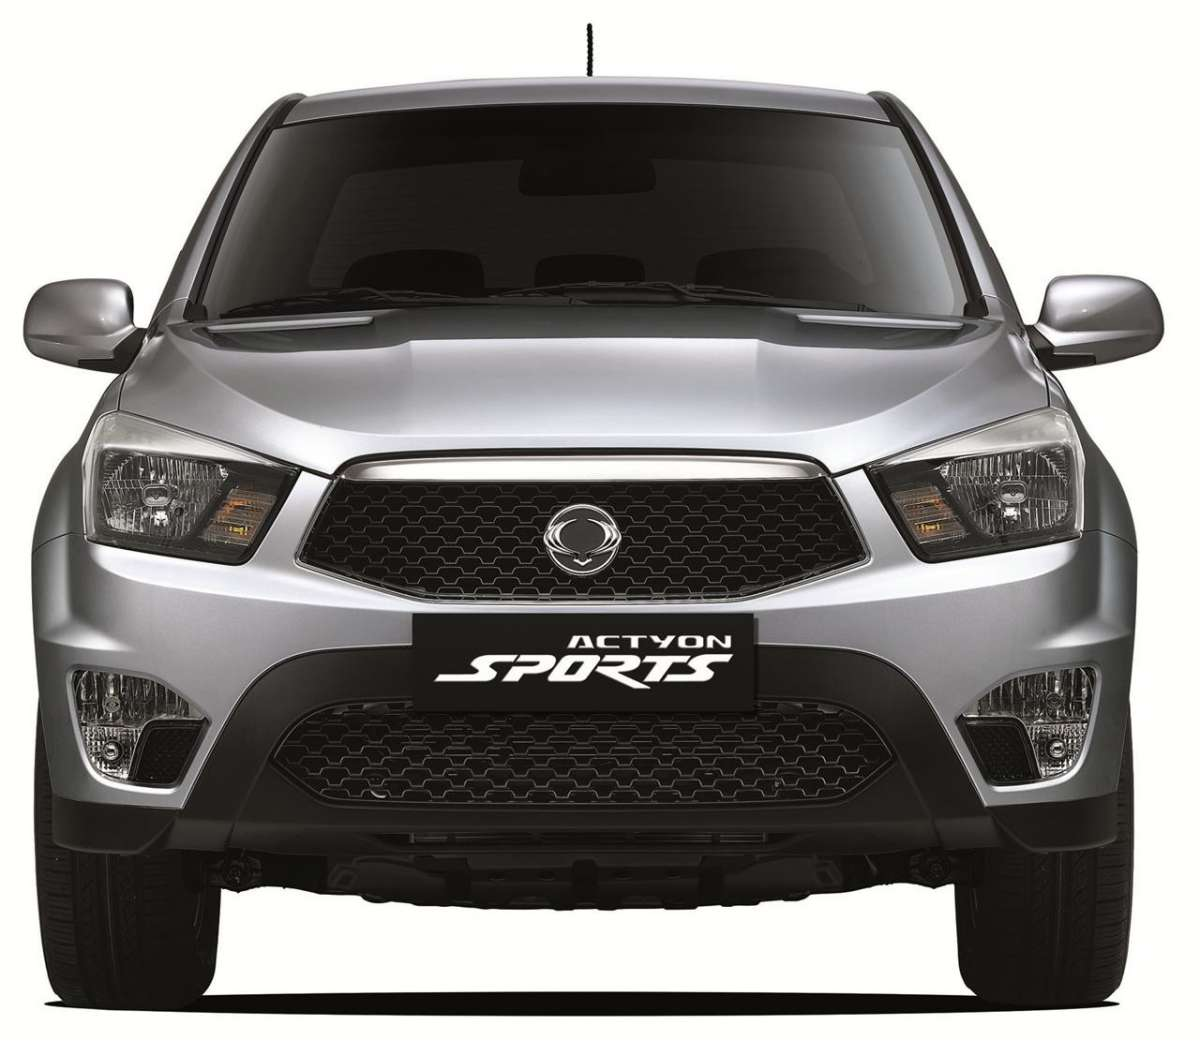 SsangYong Actyon Sports 2012 muso